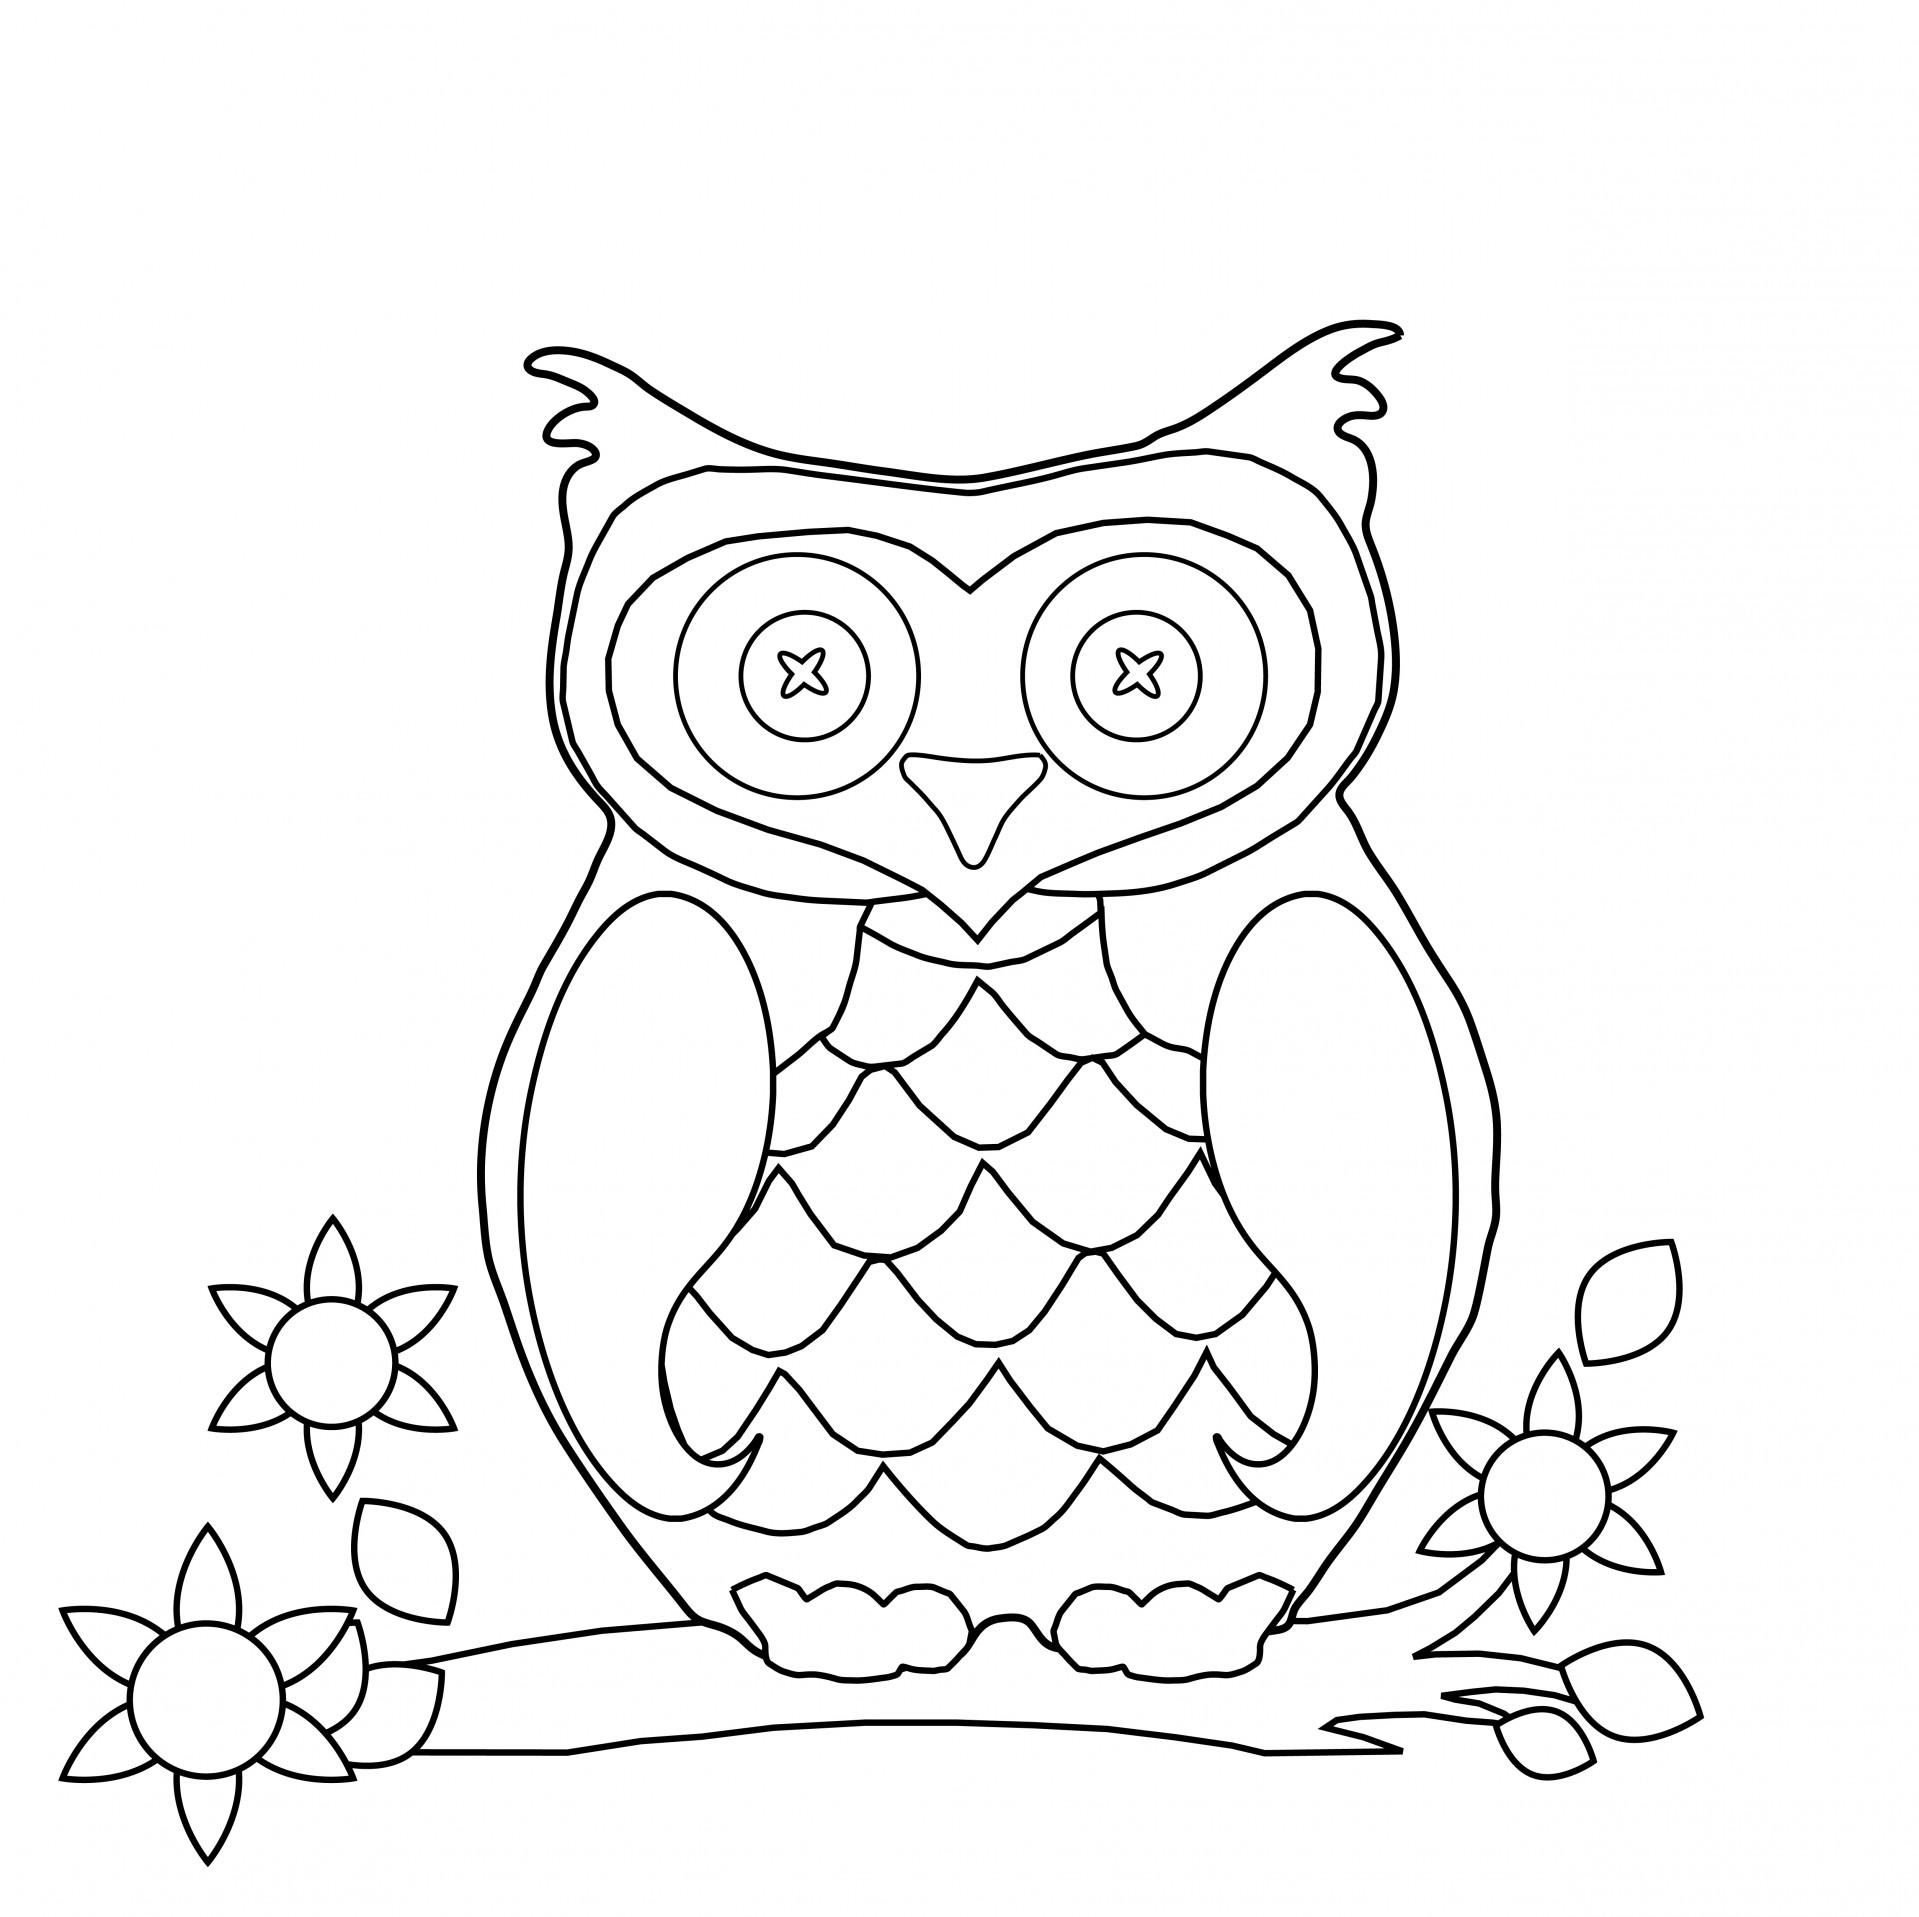 coloring kids pages free printable frozen coloring pages for kids best coloring pages kids